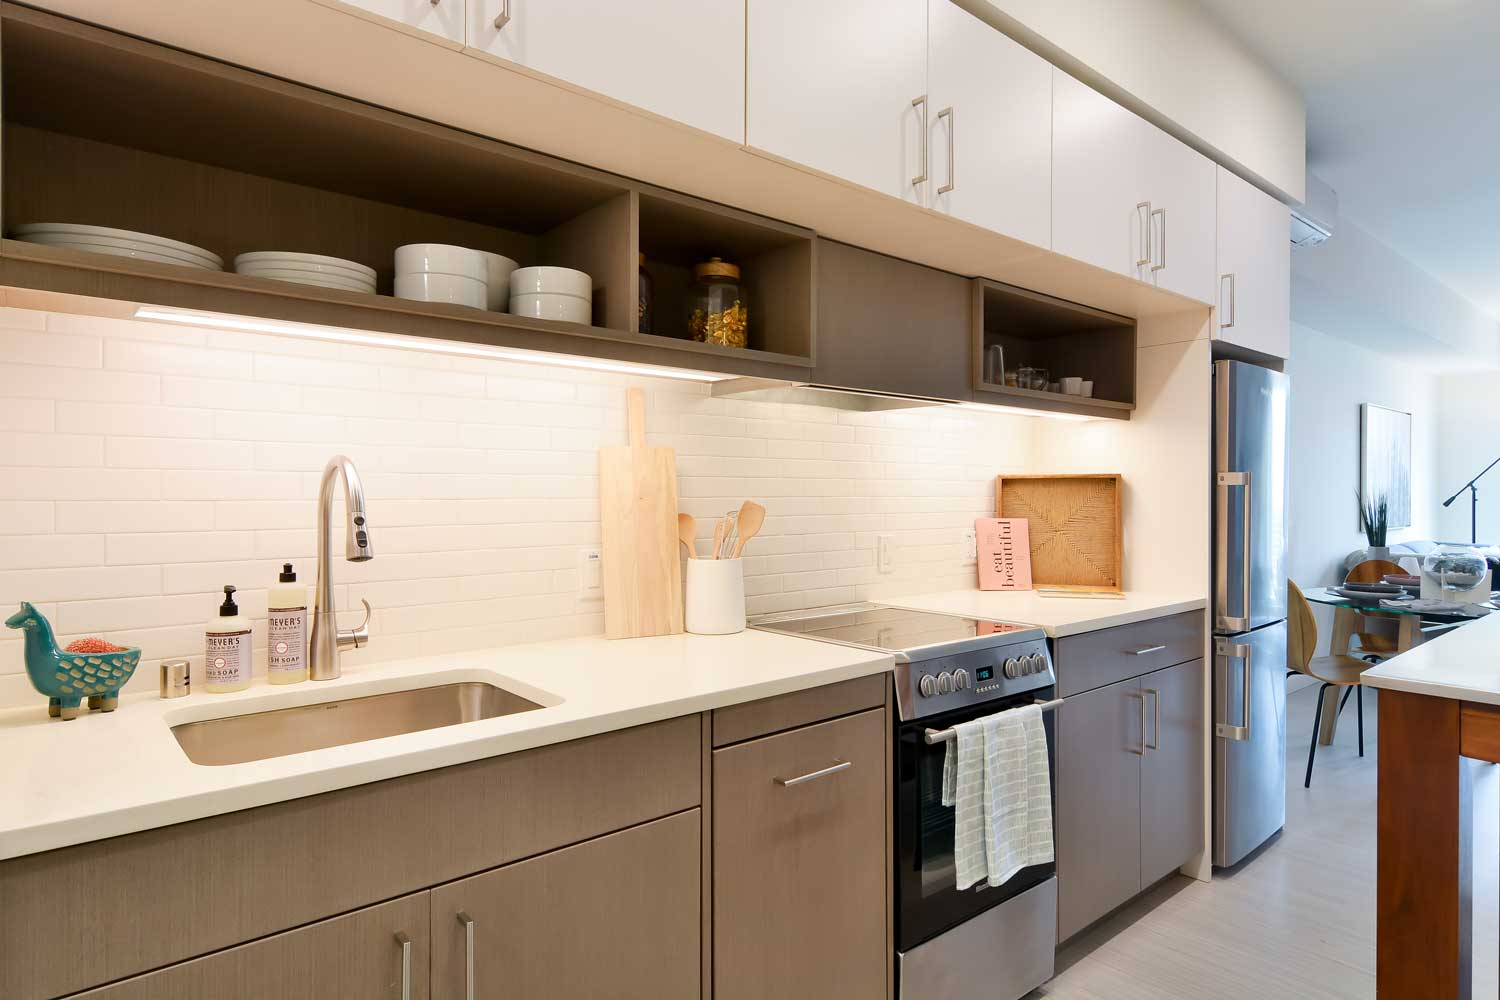 Luxury Apartments in Union City- The Union Flats Kitchen